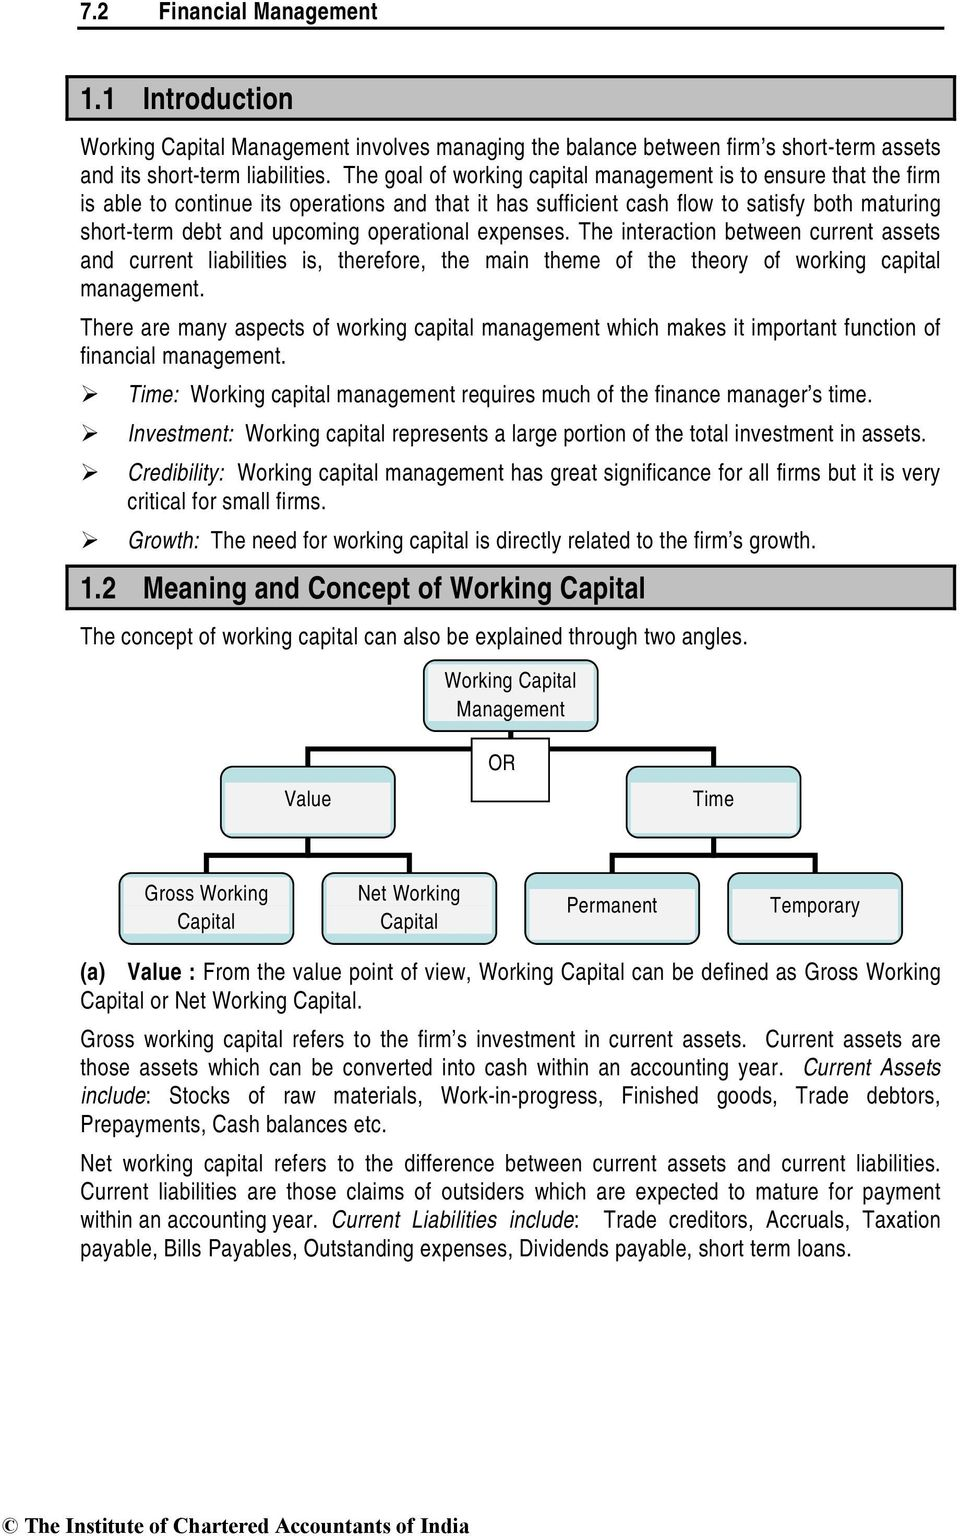 operational expenses. The interaction between current assets and current liabilities is, therefore, the main theme of the theory of working capital management.